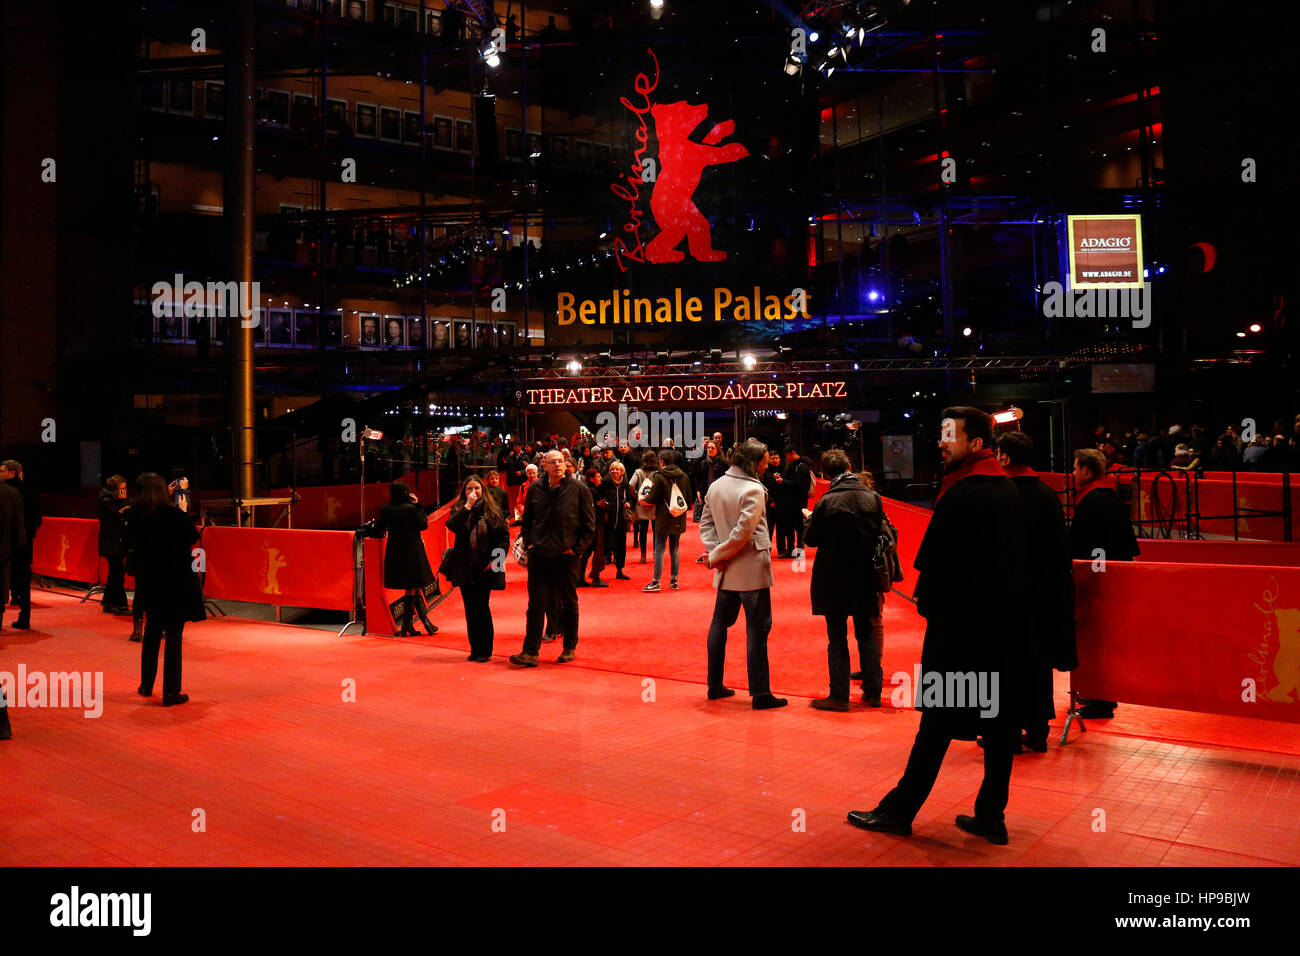 Berlinale Roter Teppich 2017 Berlinale Palast Roter Teppich Impressionen Berlinale